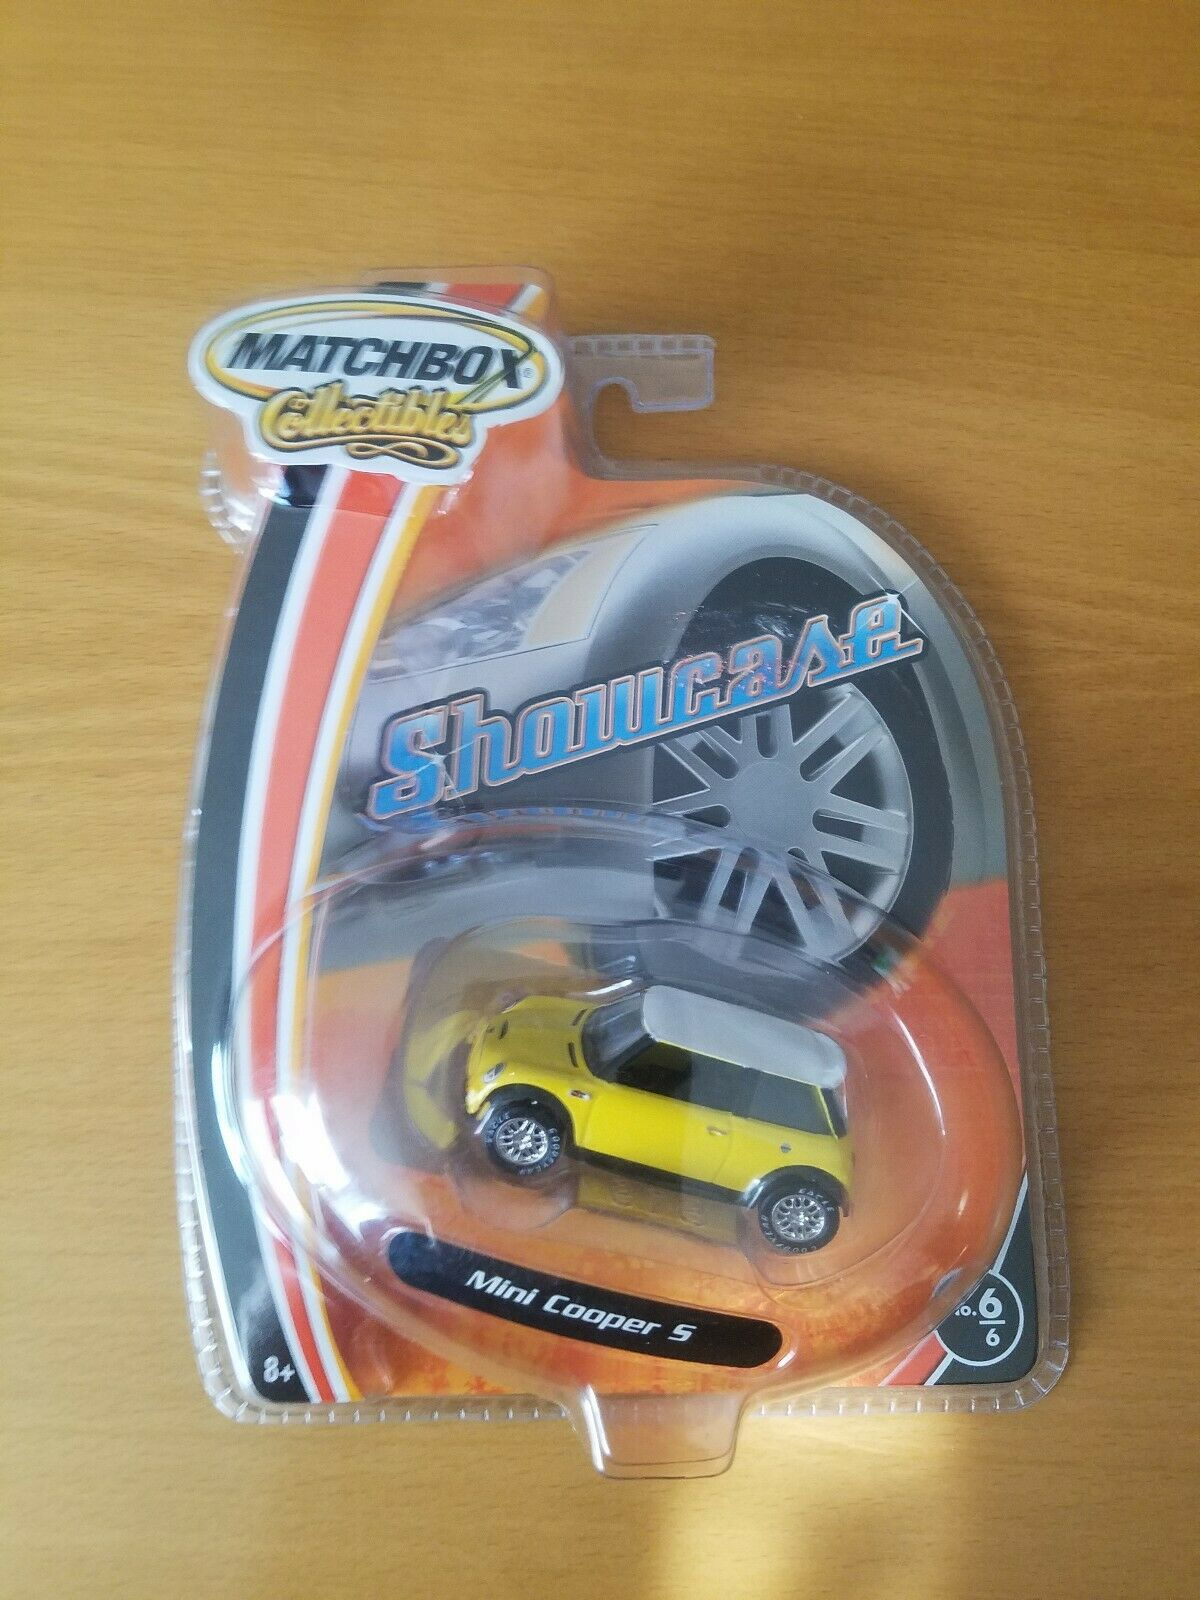 Matchbox Showcase Mini Cooper S